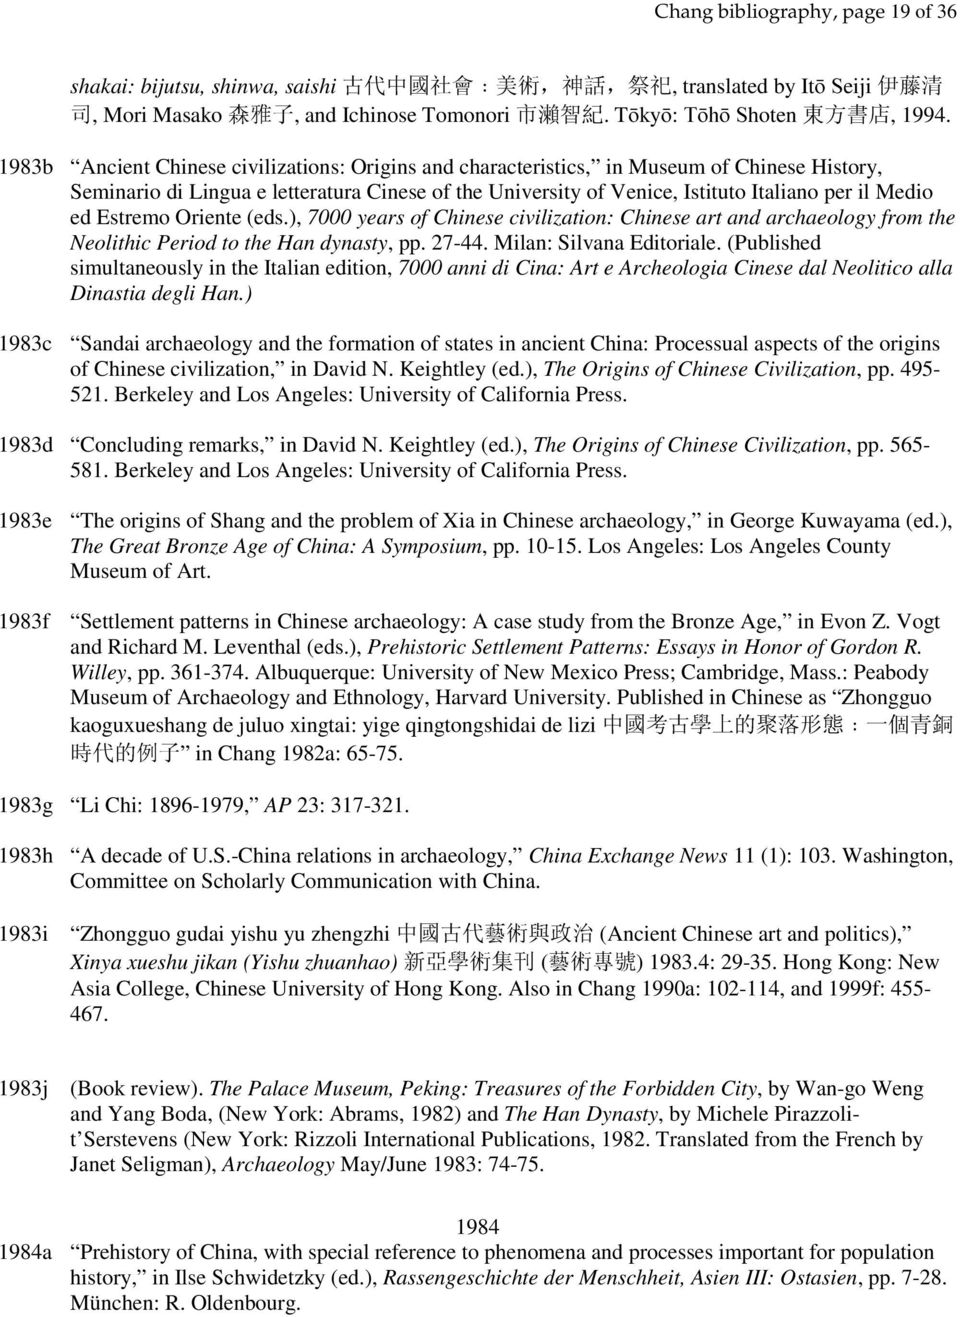 Estremo Oriente (eds.), 7000 years of Chinese civilization: Chinese art and archaeology from the Neolithic Period to the Han dynasty, pp. 27-44. Milan: Silvana Editoriale.